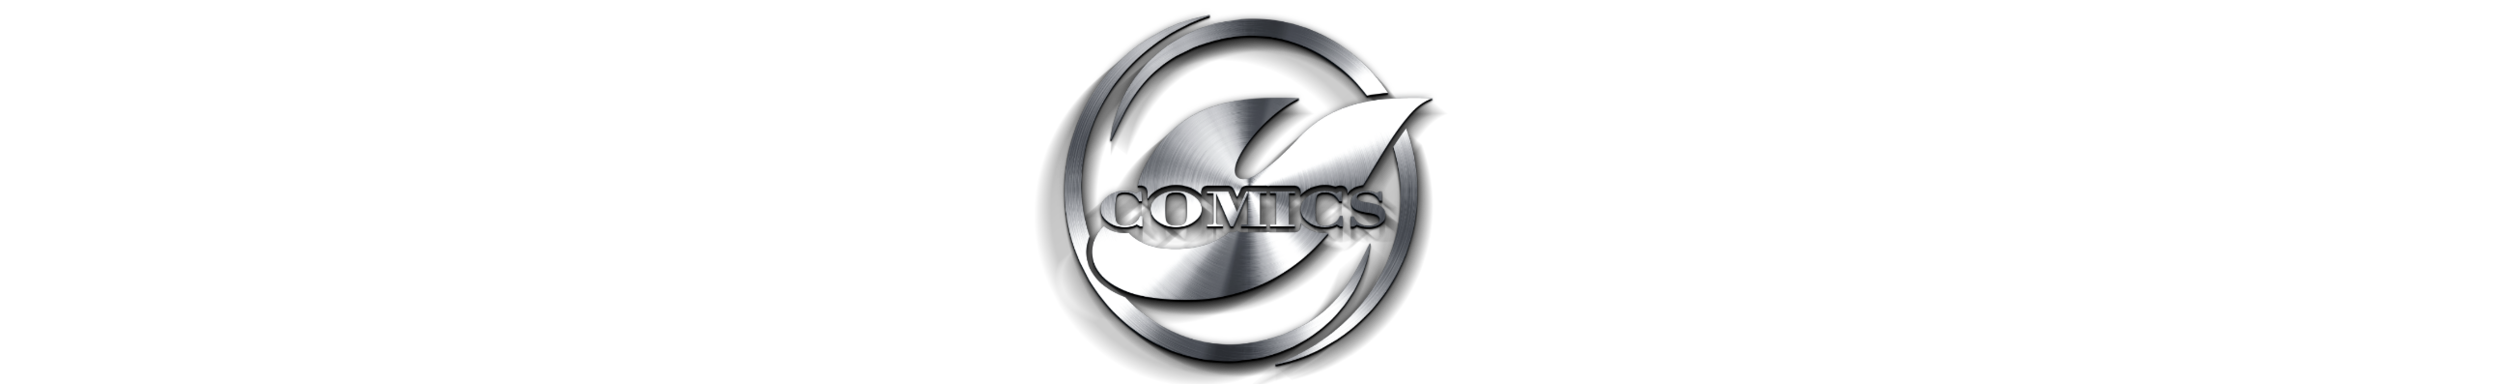 Y Comic Logo Fixed for Footer.png